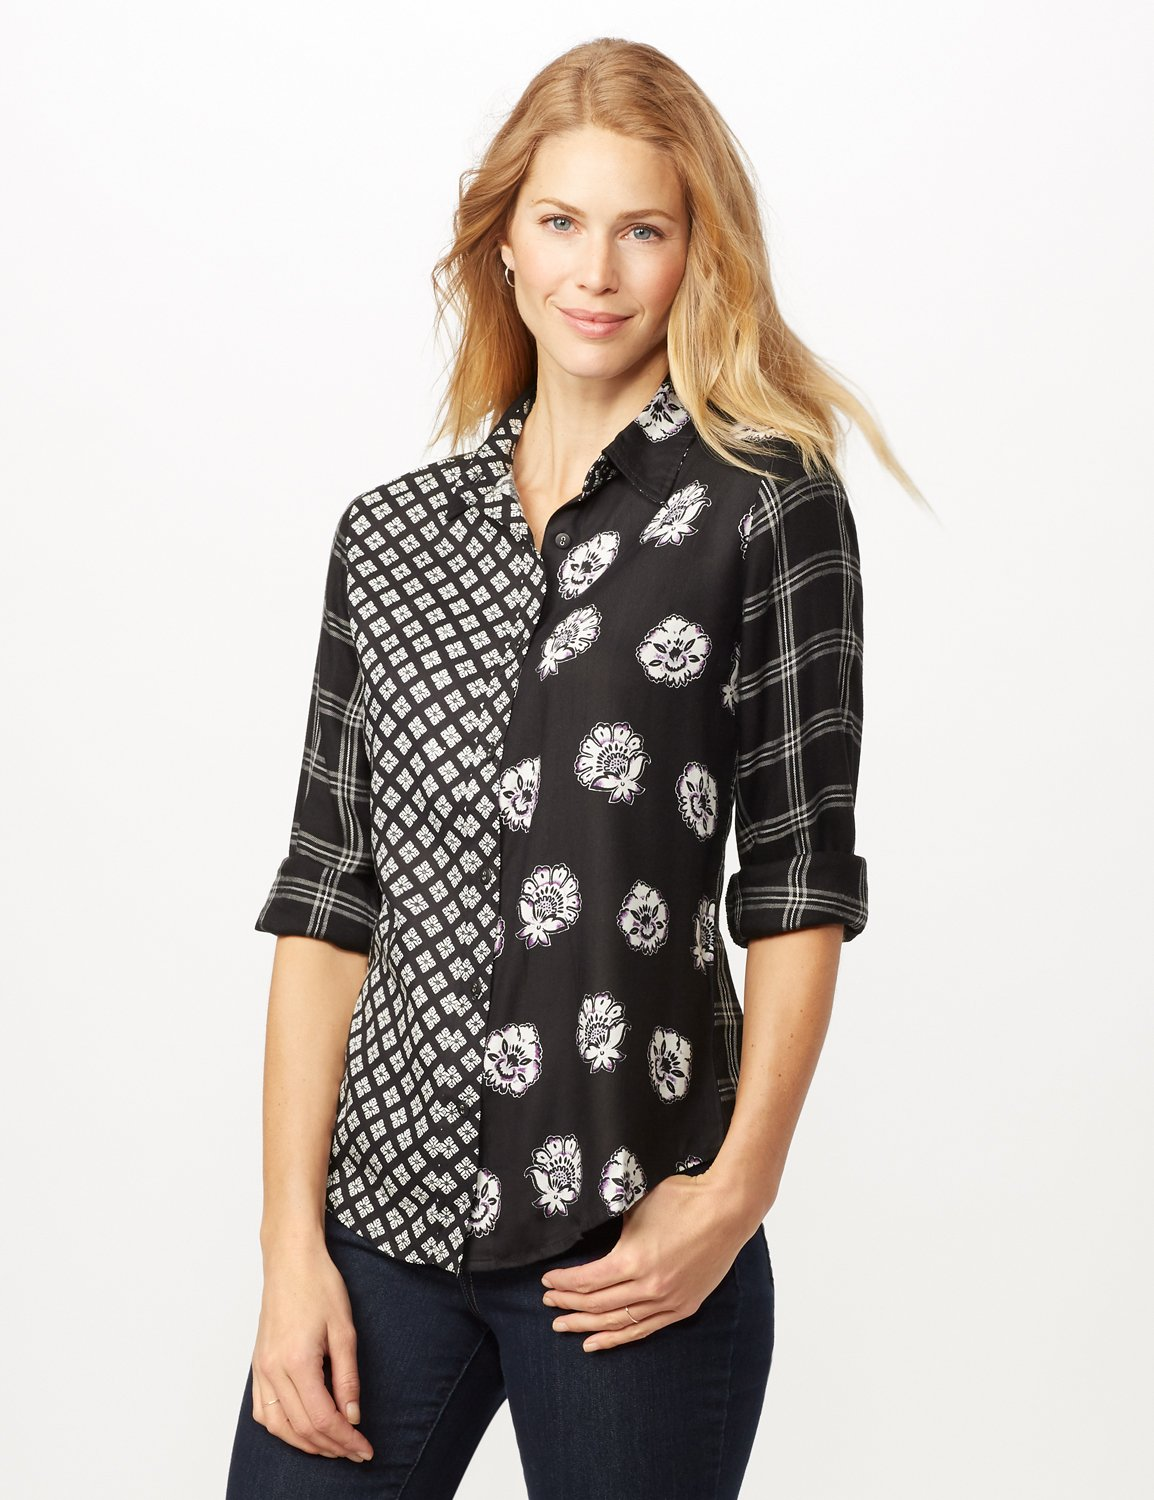 Long Sleeve Mixed Media Print Woven Top -Black/grey - Front